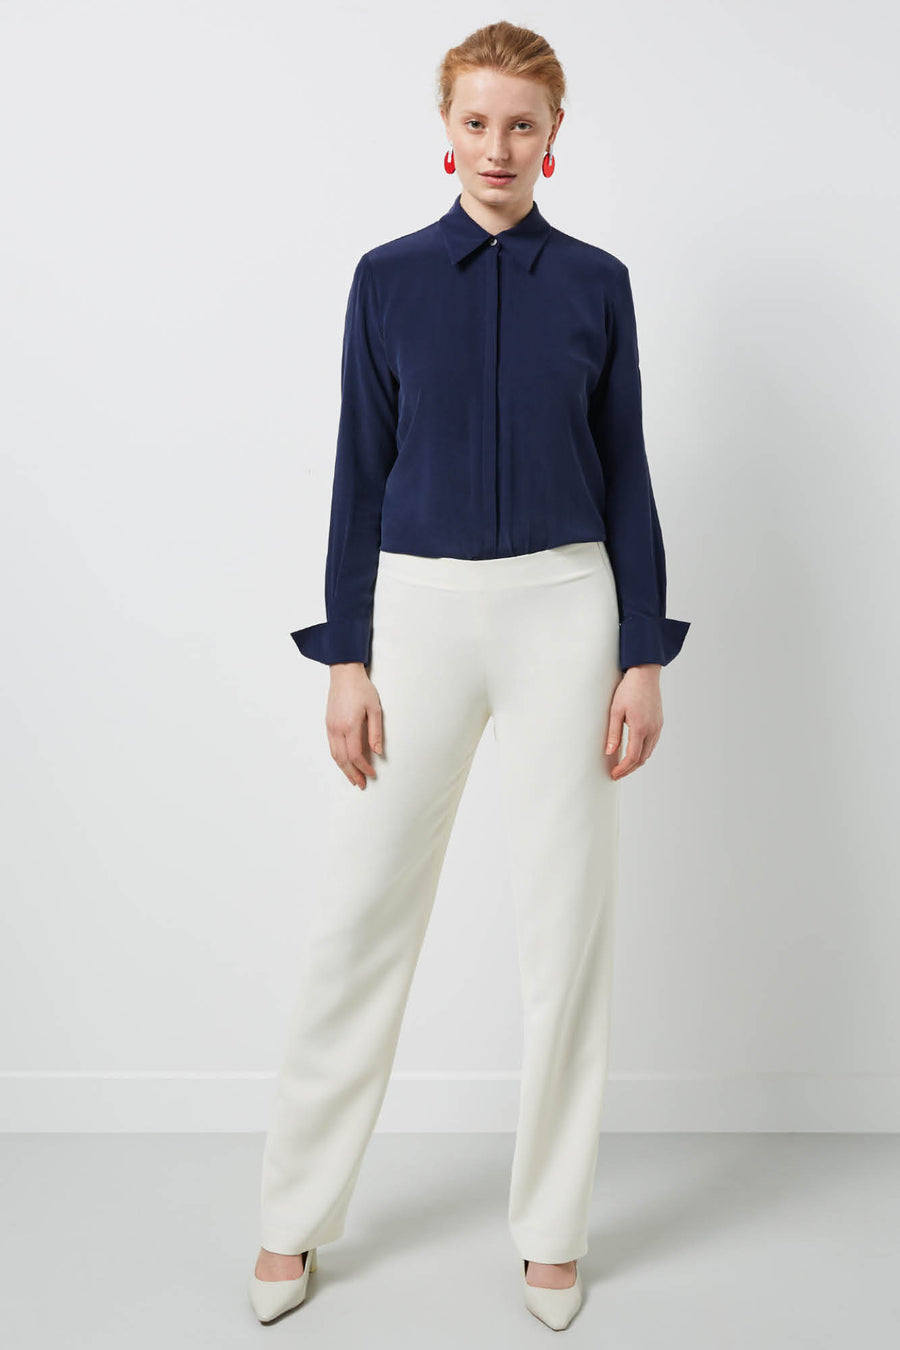 Stirling Ivory Trousers